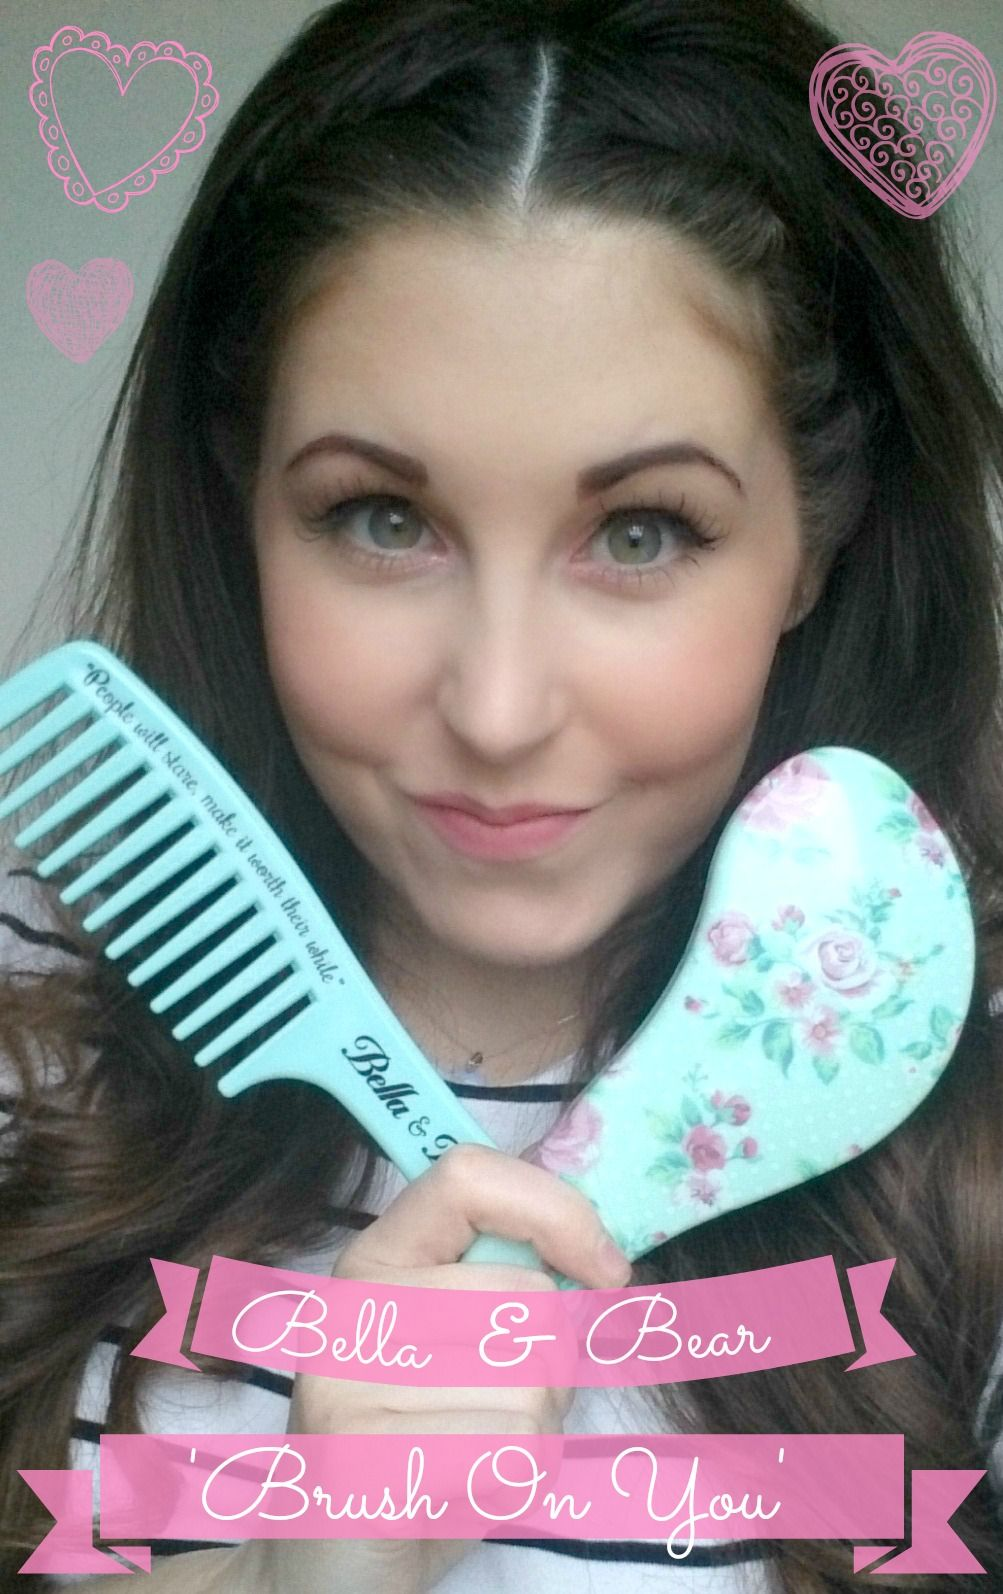 We love the 'Brush On You' detangling set! Buy it in our stores now! #hair #hairbrush #vintage #floral #bbloggers